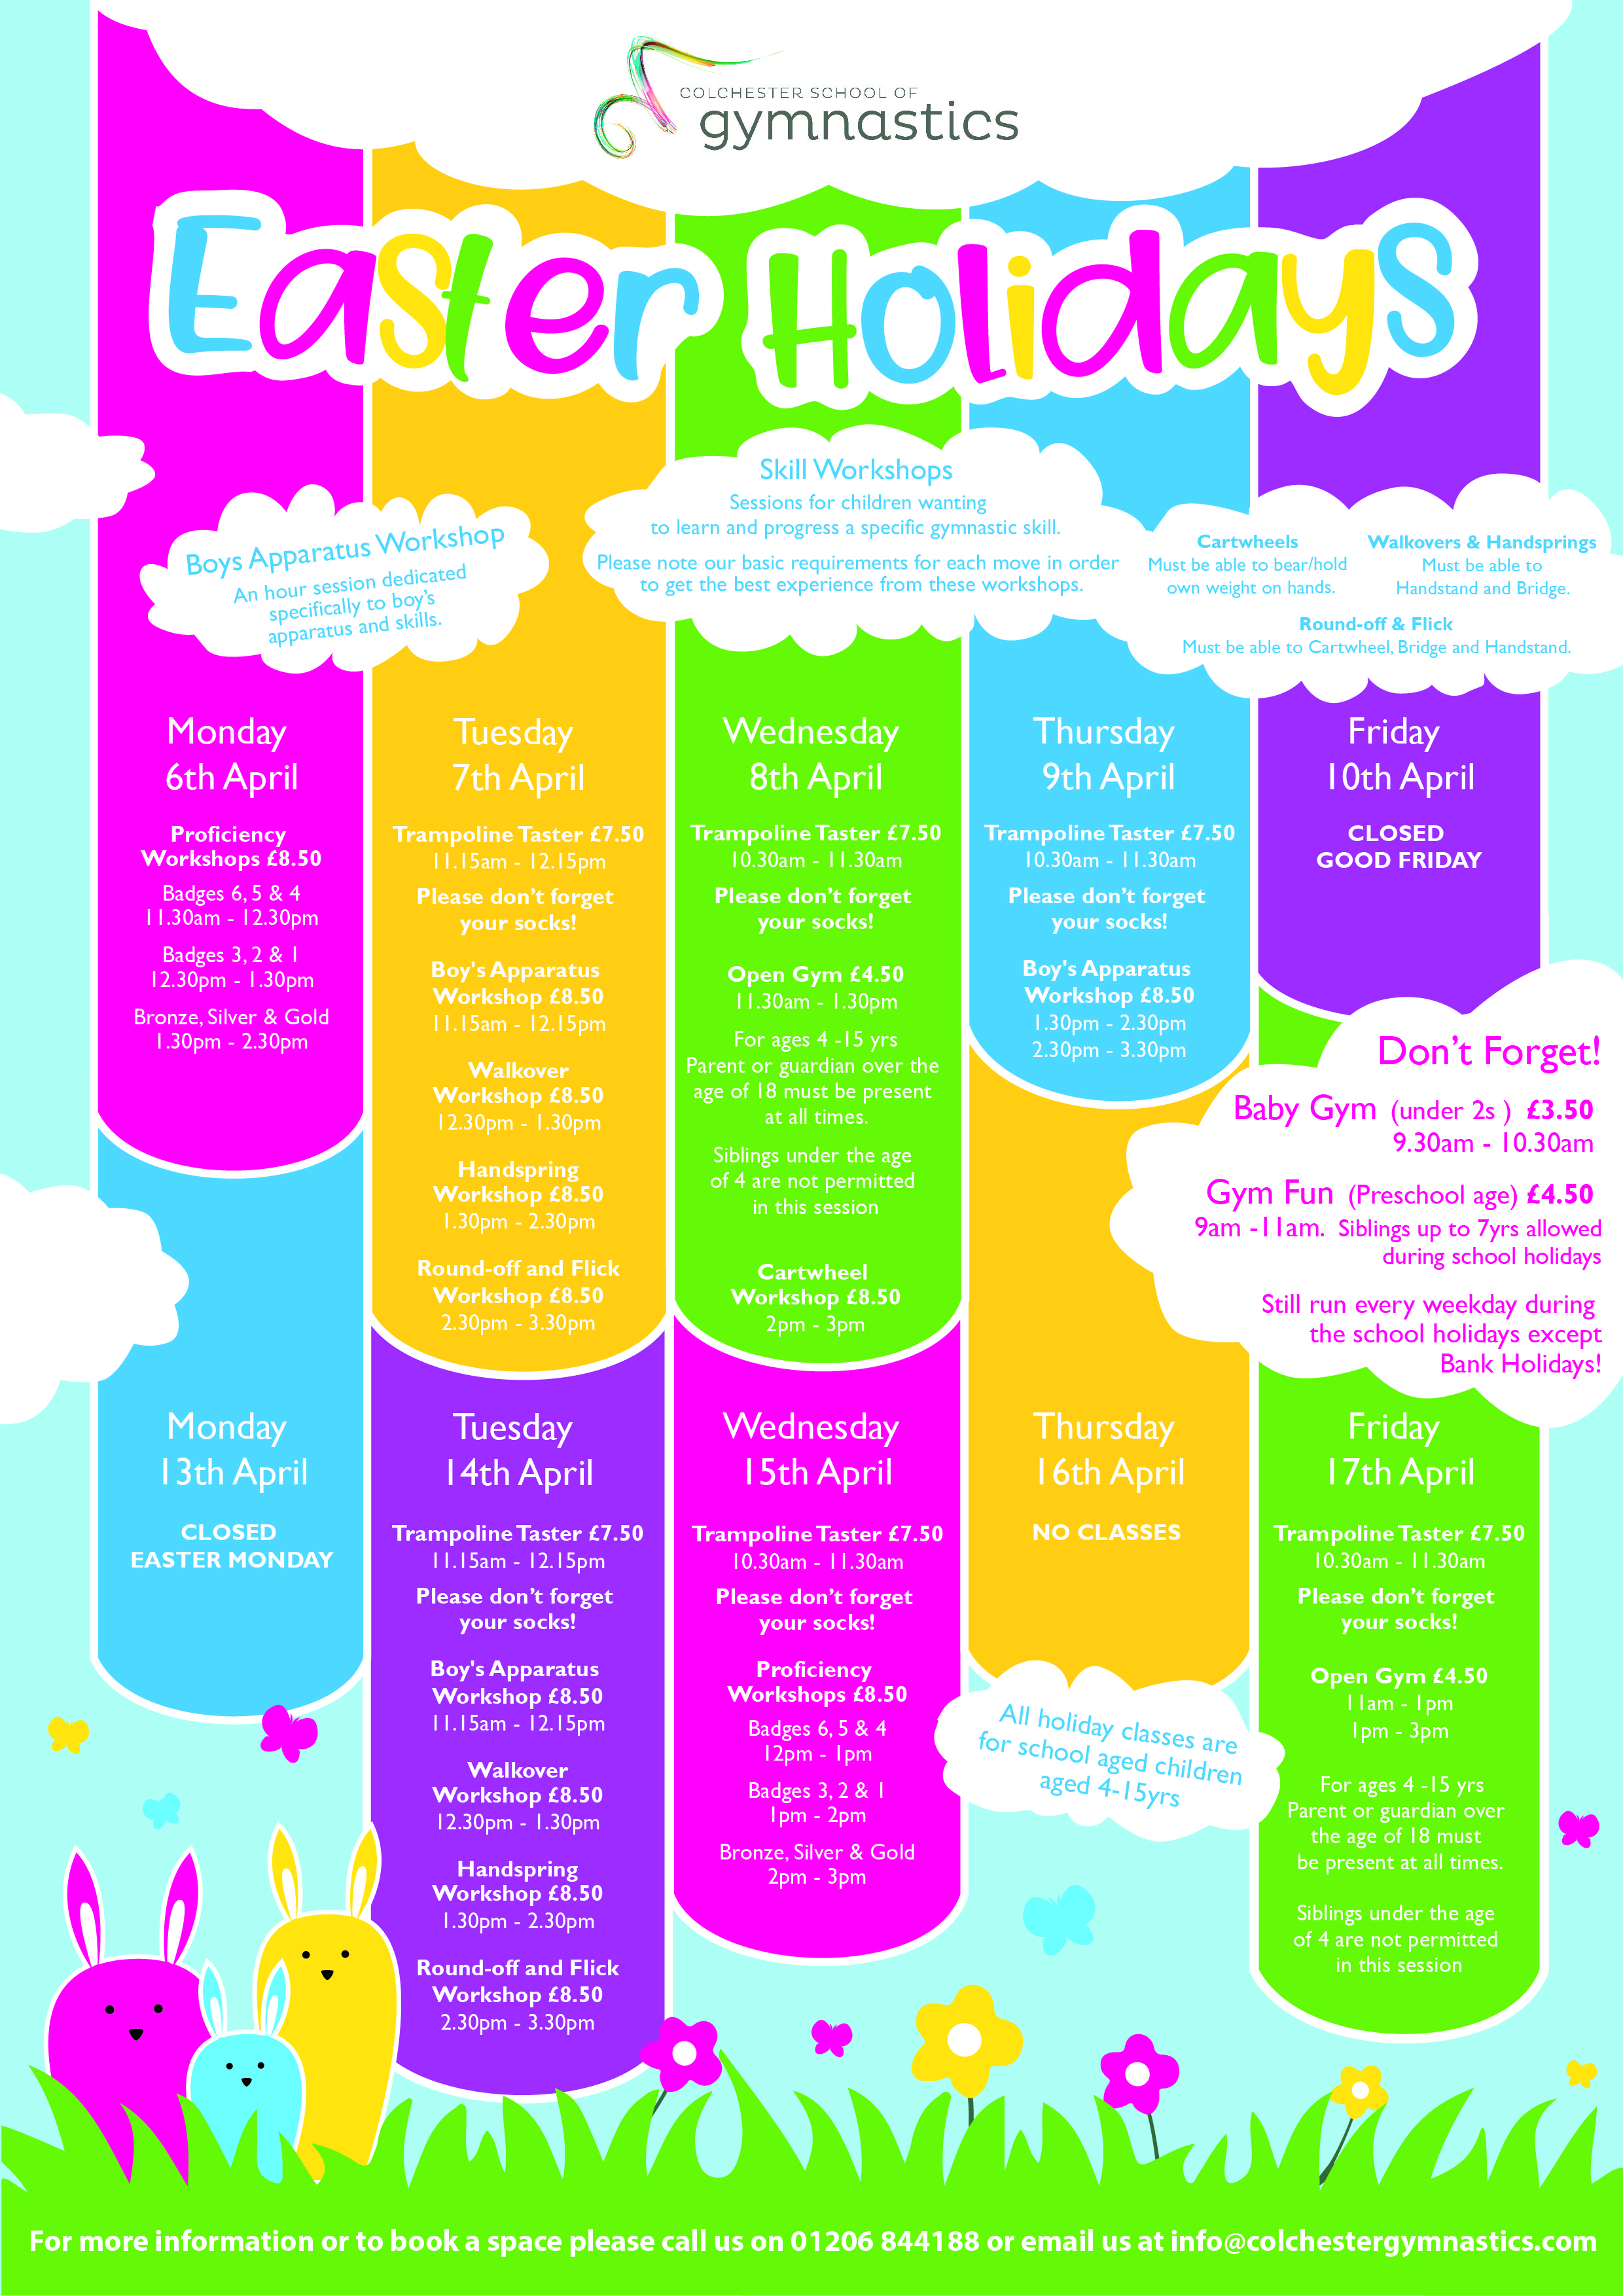 CSG Easter Holiday poster 2020-01